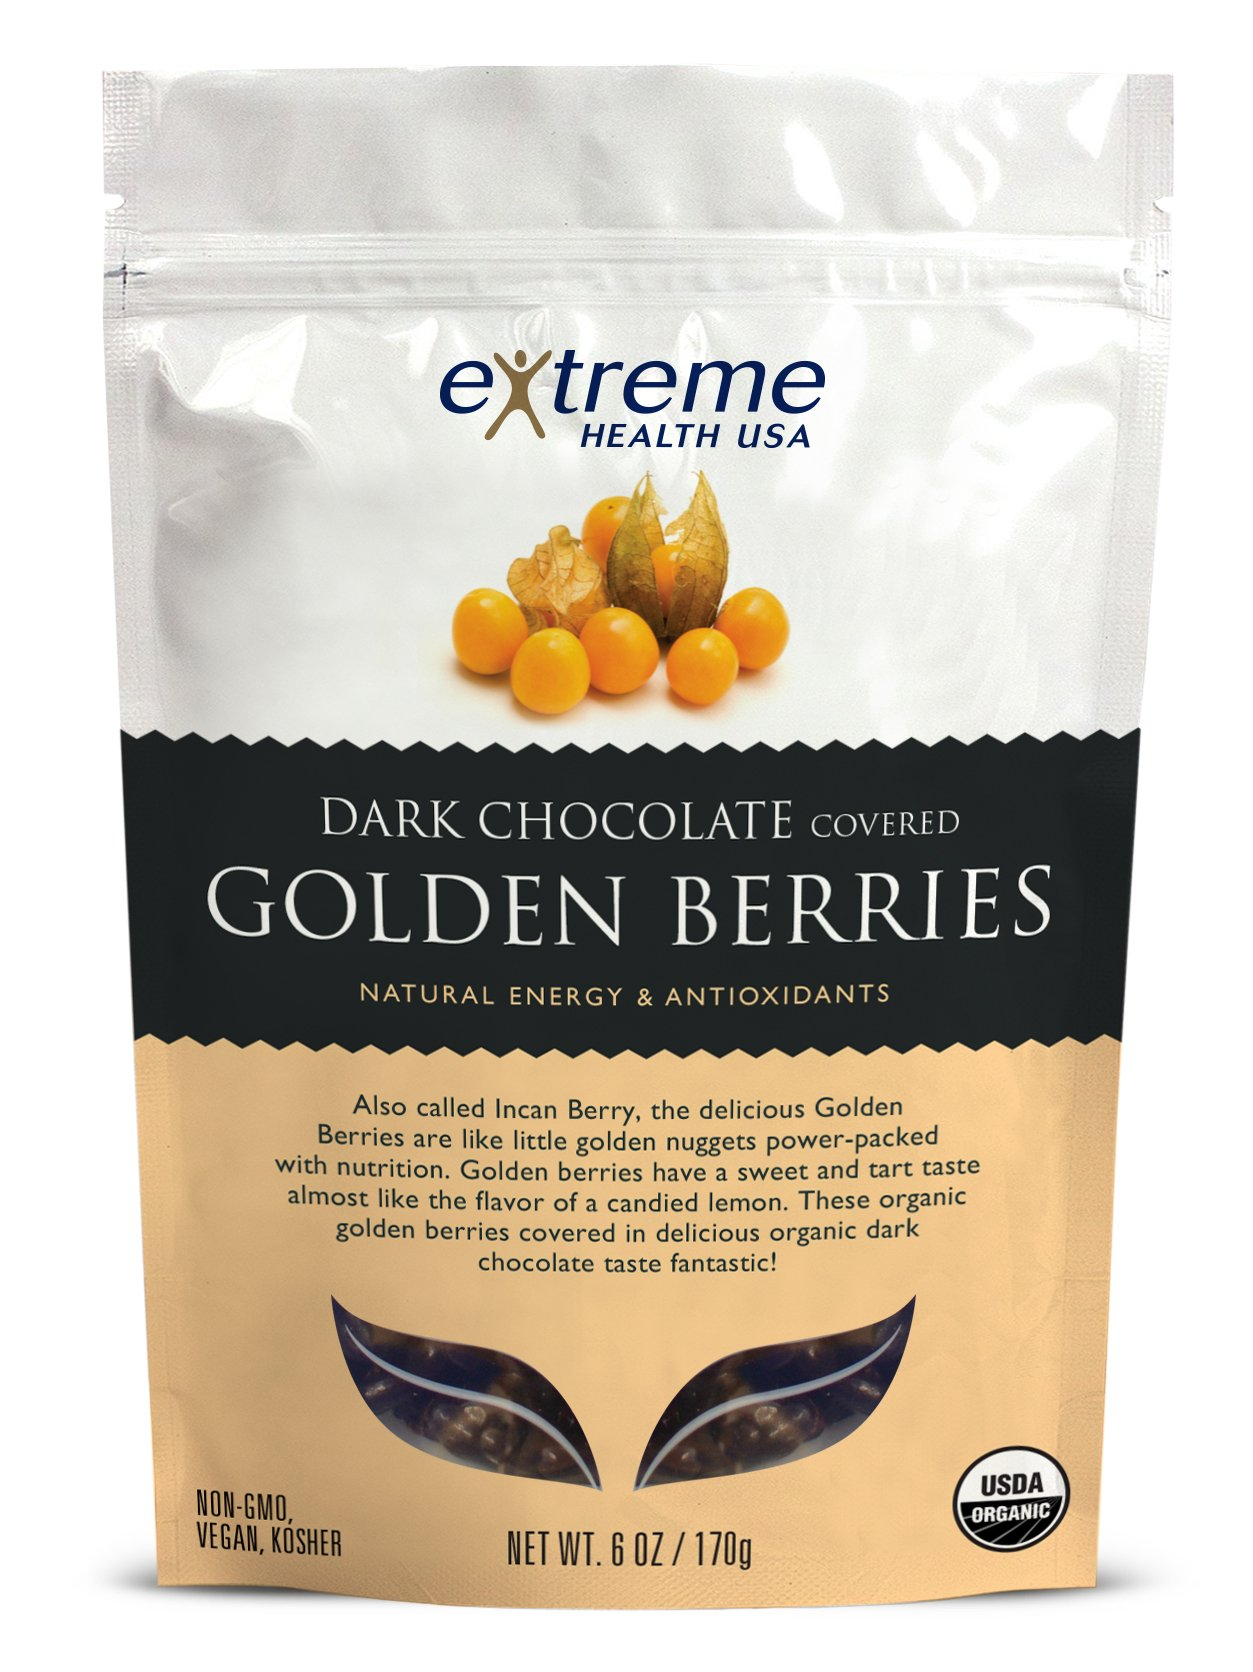 Extreme Health Usa Organic Golden Berries Covered with Dark Chocolate, 6-Ounce